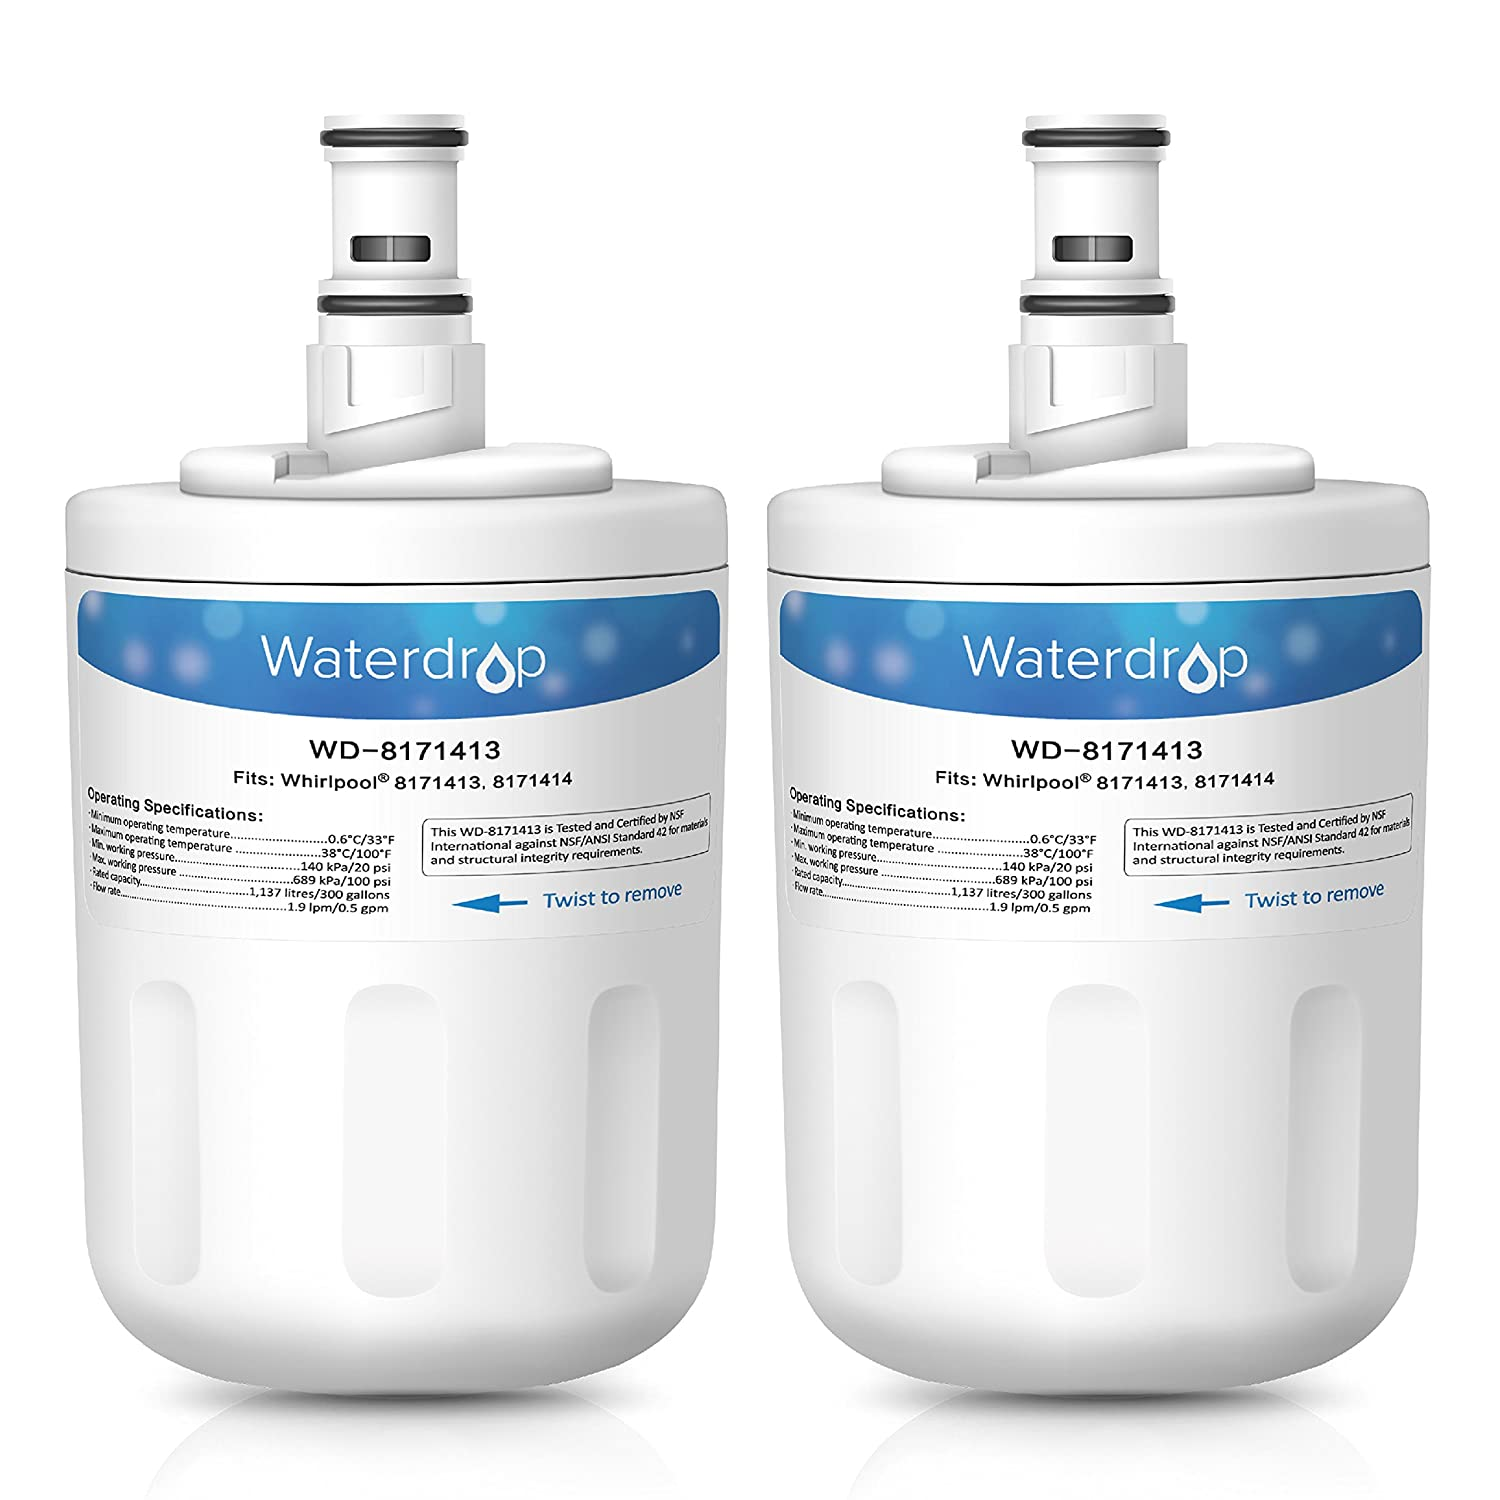 Waterdrop Refrigerator Water Filter, Compatible with Whirlpool 8171413, 8171414, EDR8D1, Kenmore 46-9002, Pack of 2